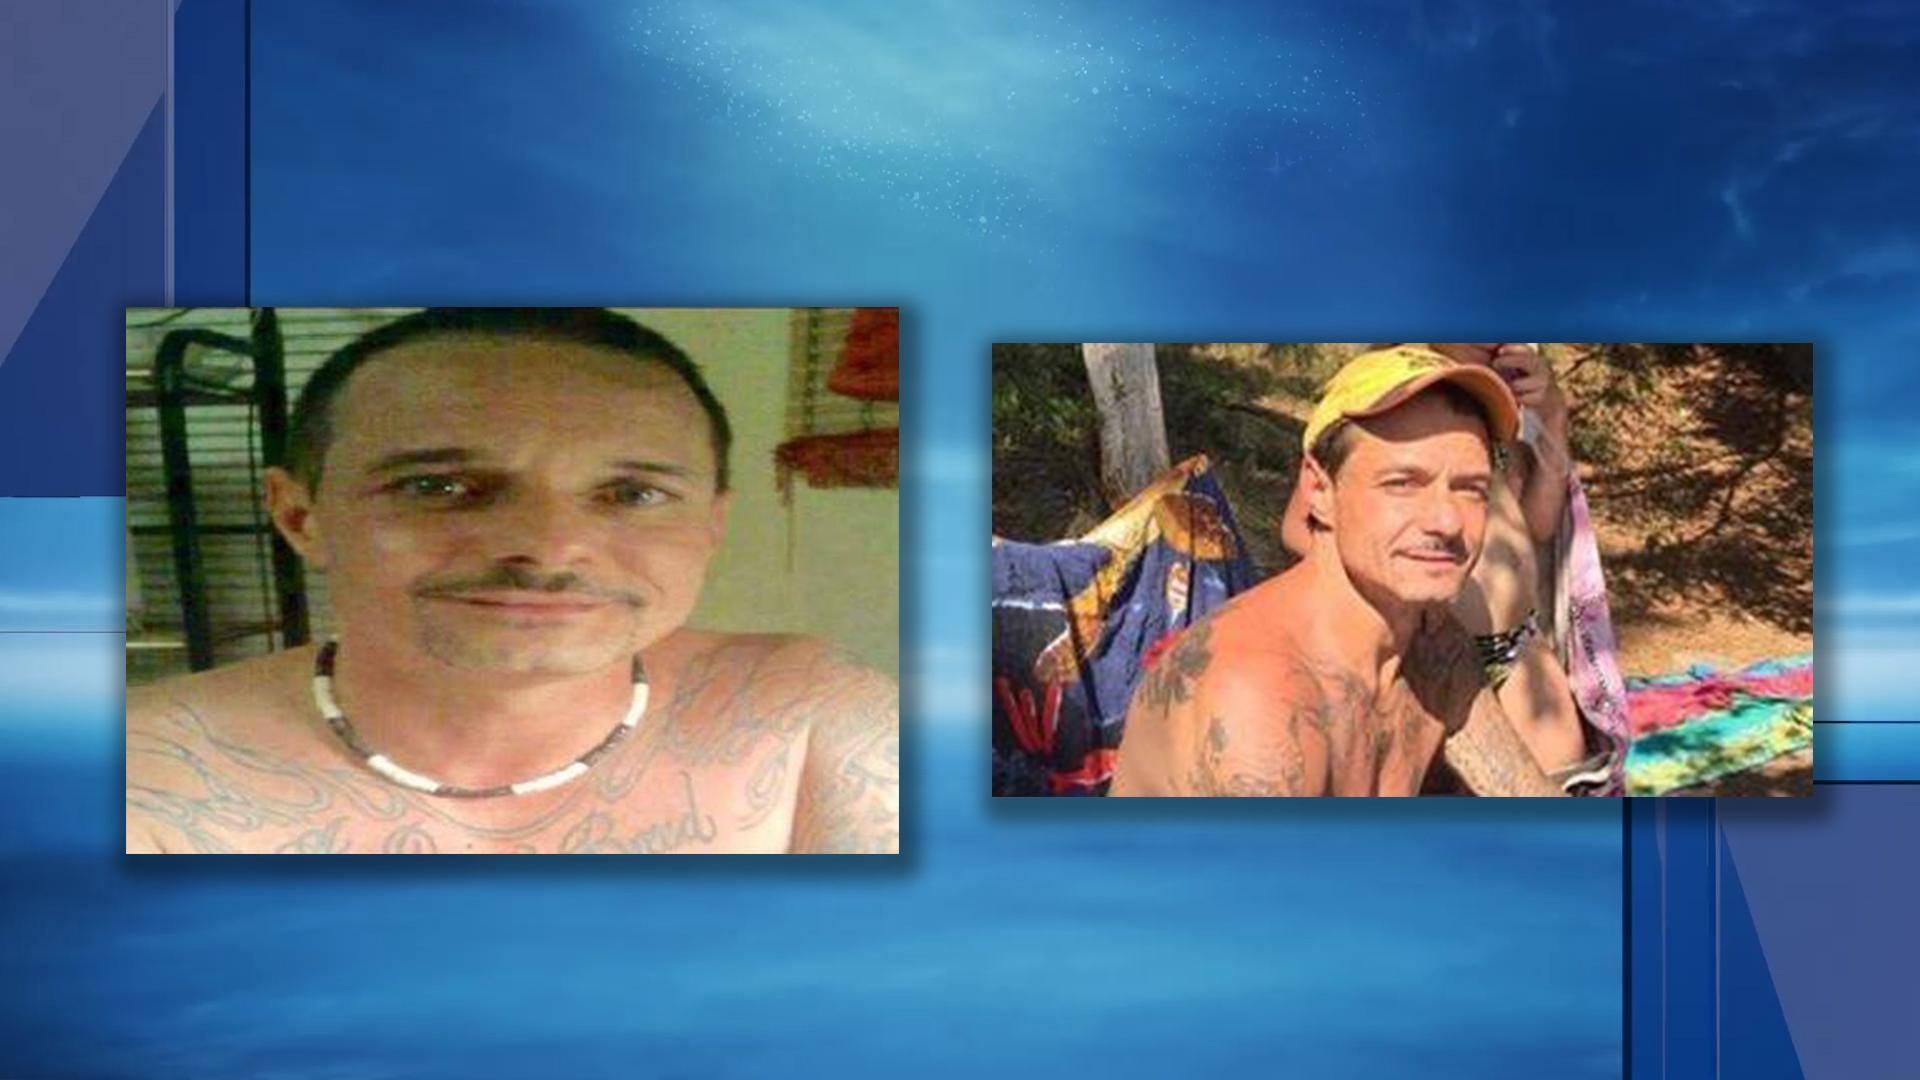 Authorities said 46-year-old John Benevides has not been seen since Friday, June 17, 2017. (Police photos)